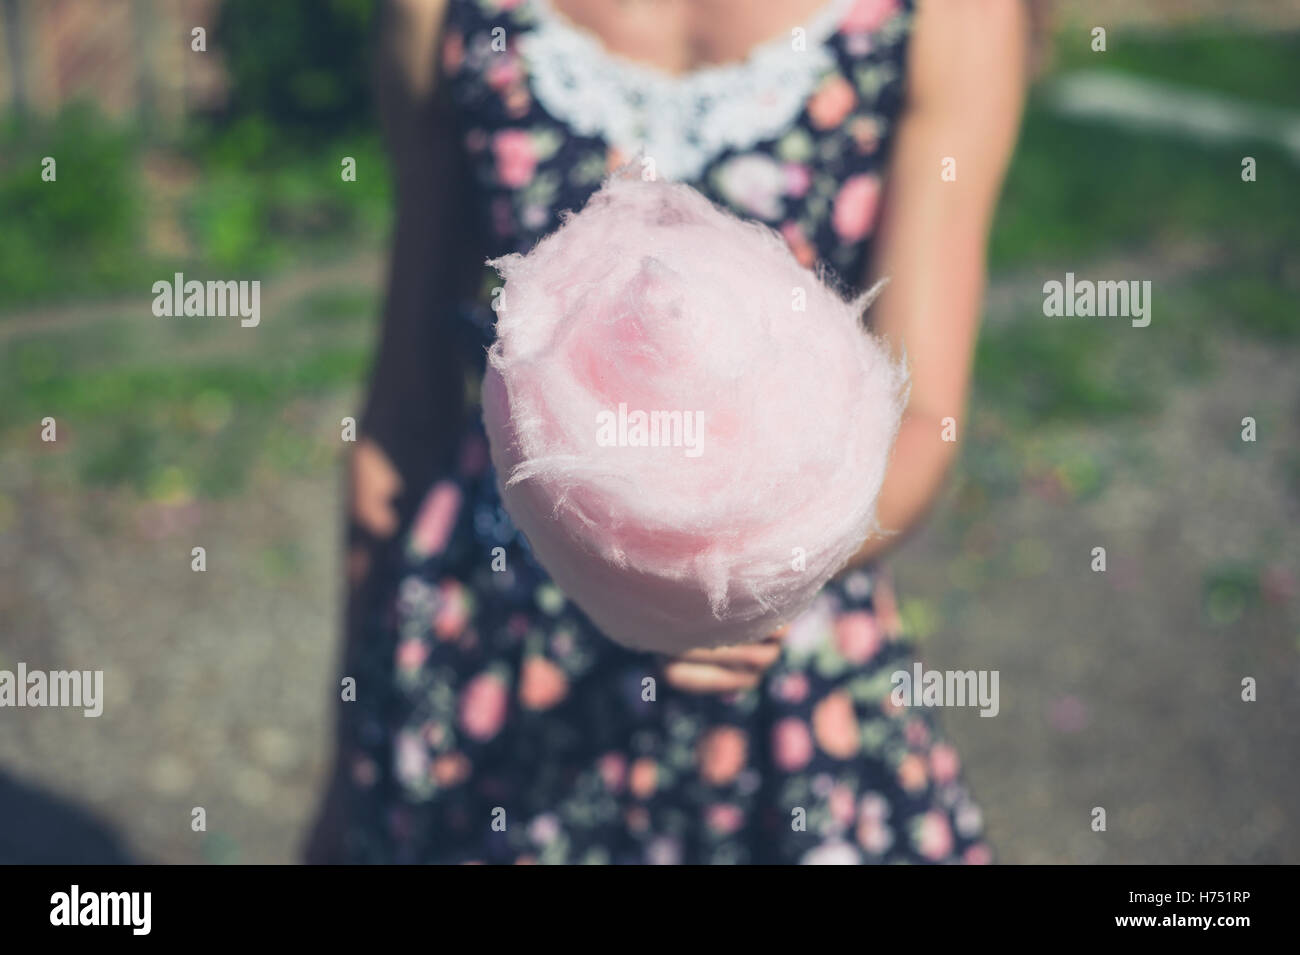 A young woman wearing a dress is standing outside with a candyfloss on a sunny summer day - Stock Image